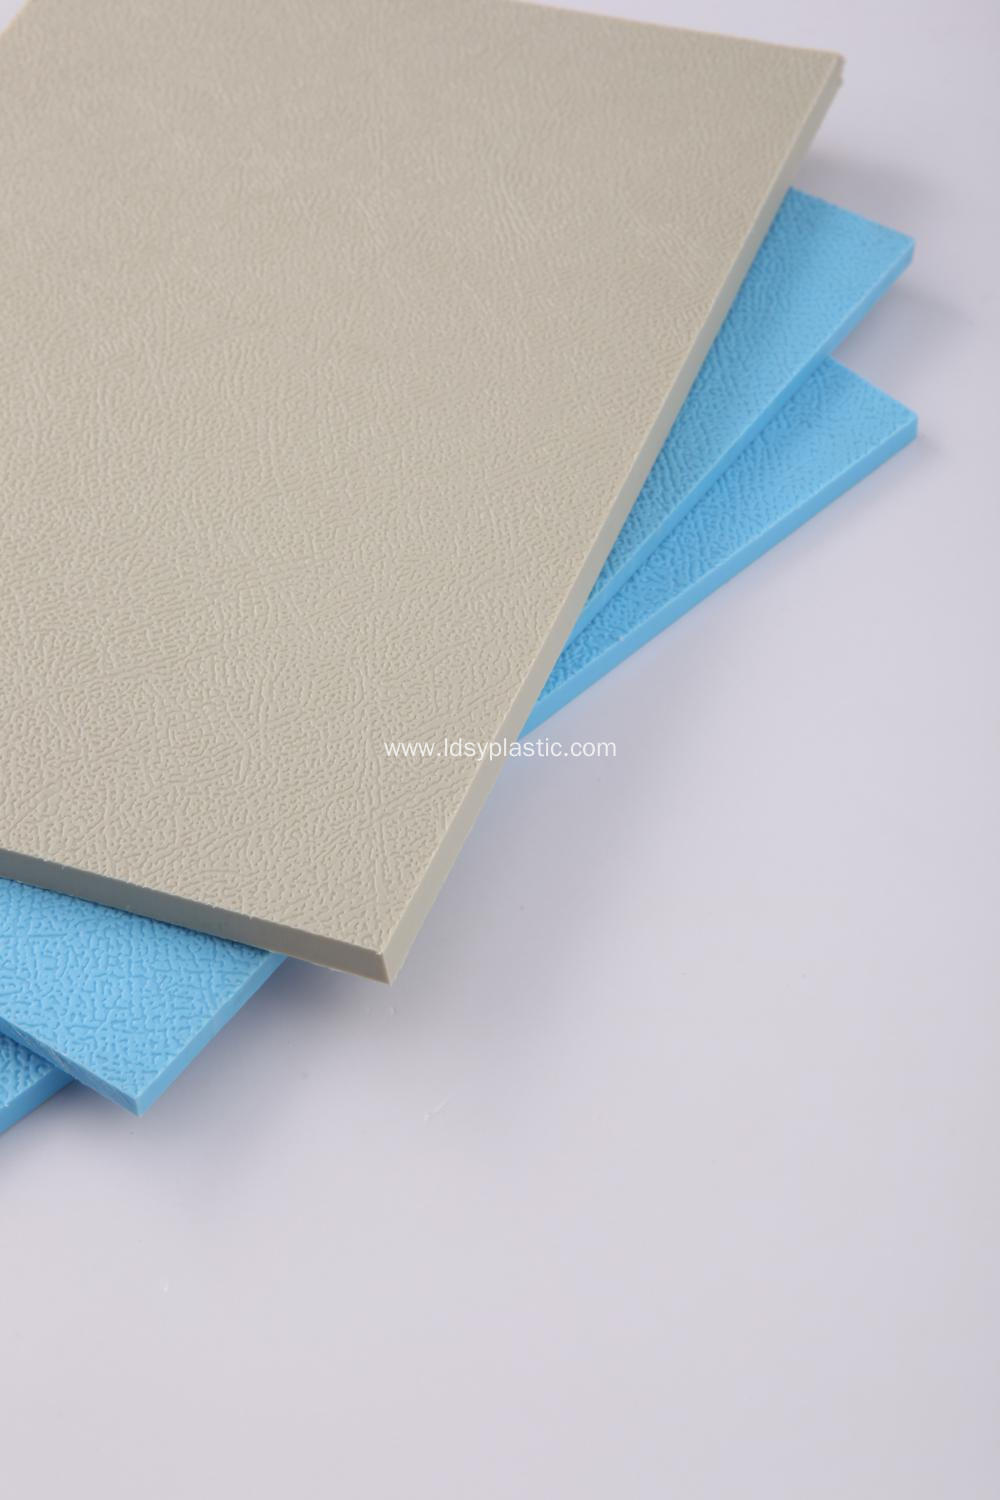 Polypropylene PP Sheet for Chemical Industry